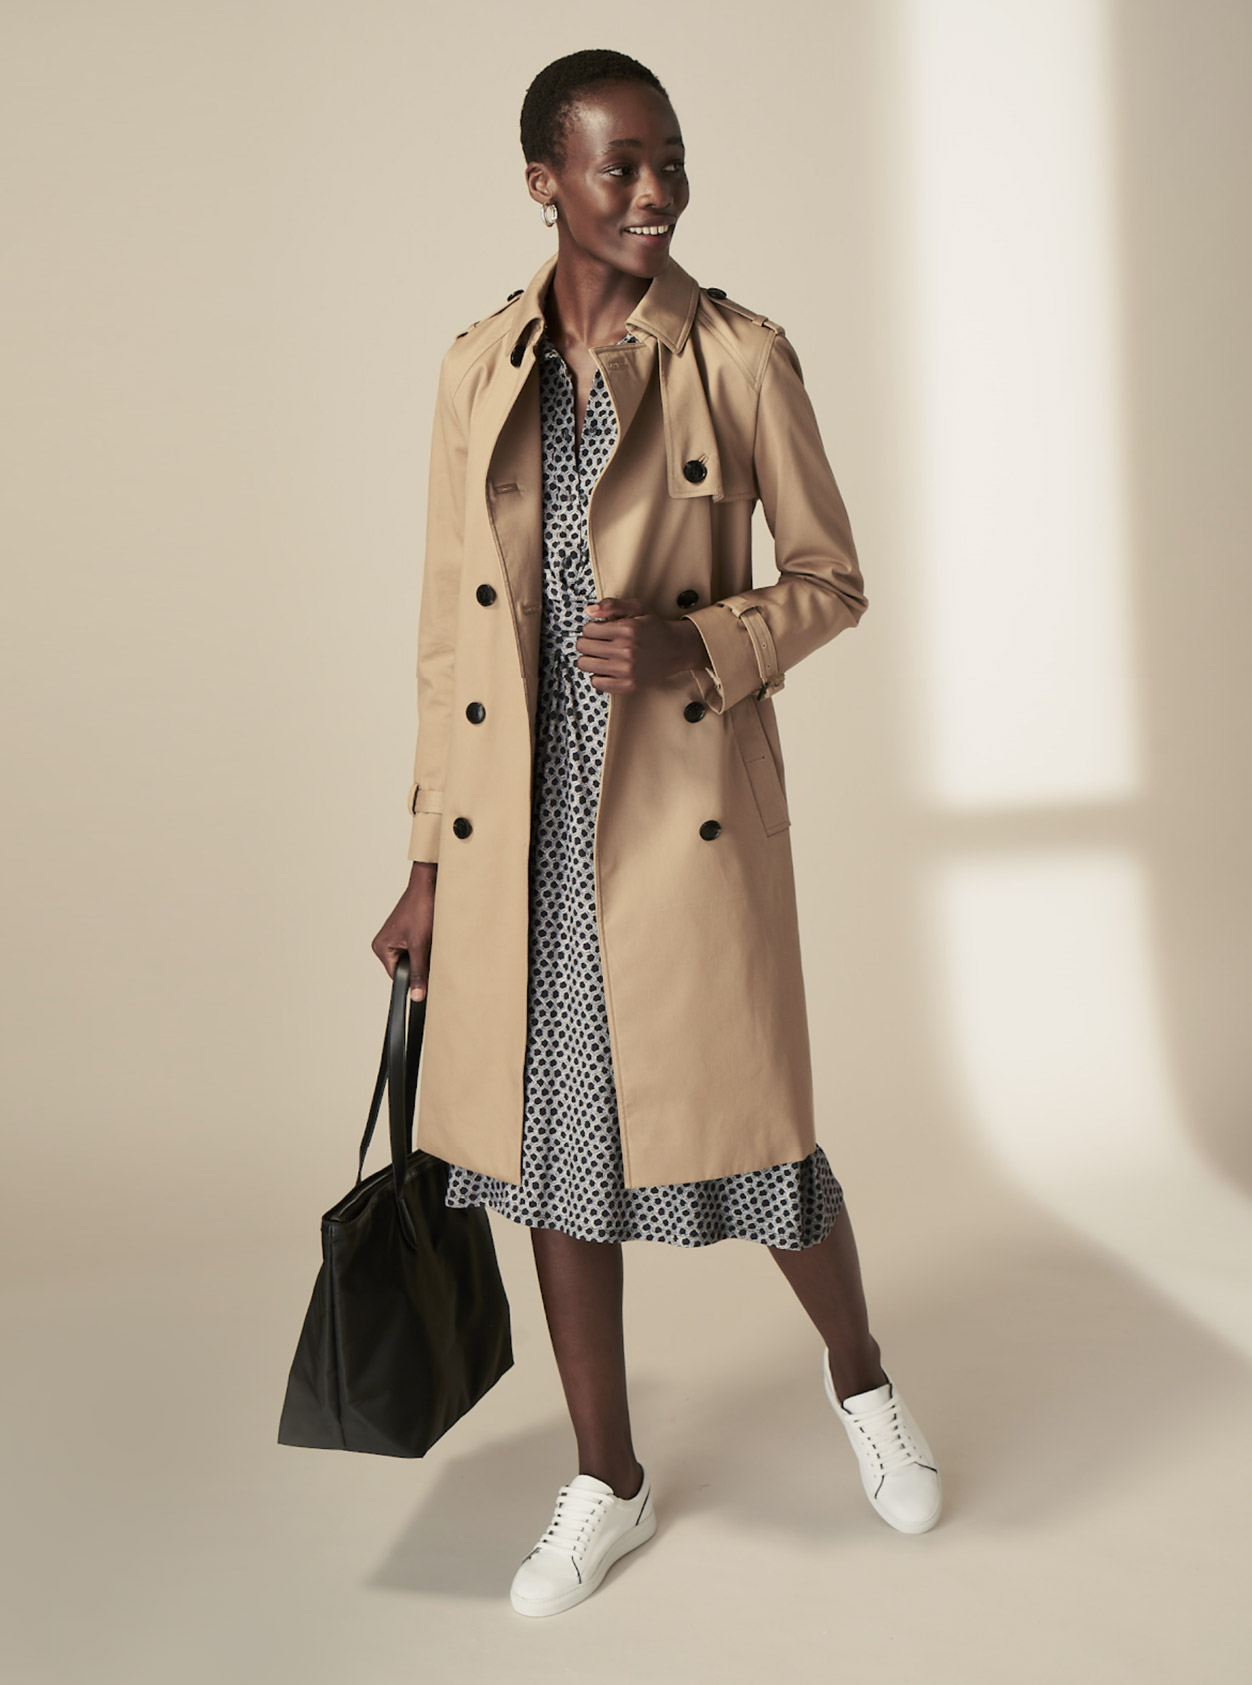 Hobbs model wearing a beige trench coat over a midi dress, styled with white trainers and a black tote bag.